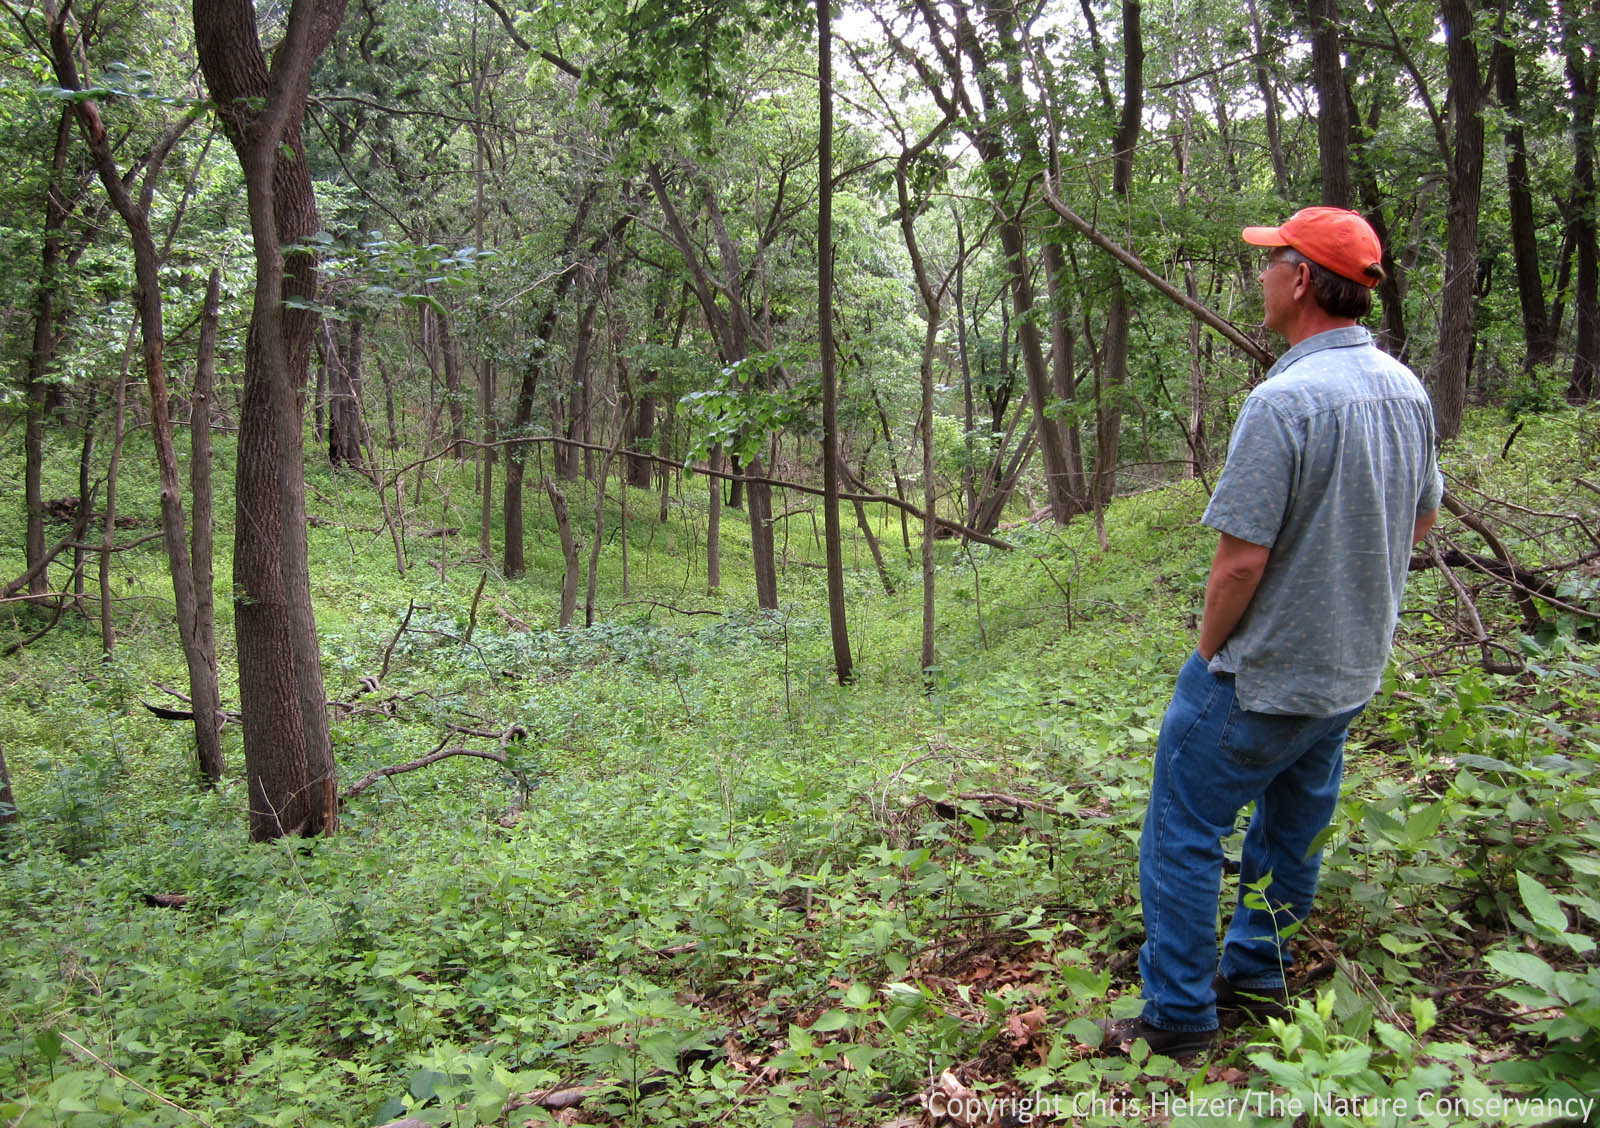 saving nebraska s oak woodlands by burning them the prairie gerry steinauer stands in an area of woodland that has been treated with frequent fire as well as some hack and squirt herbicide treatments to help kill